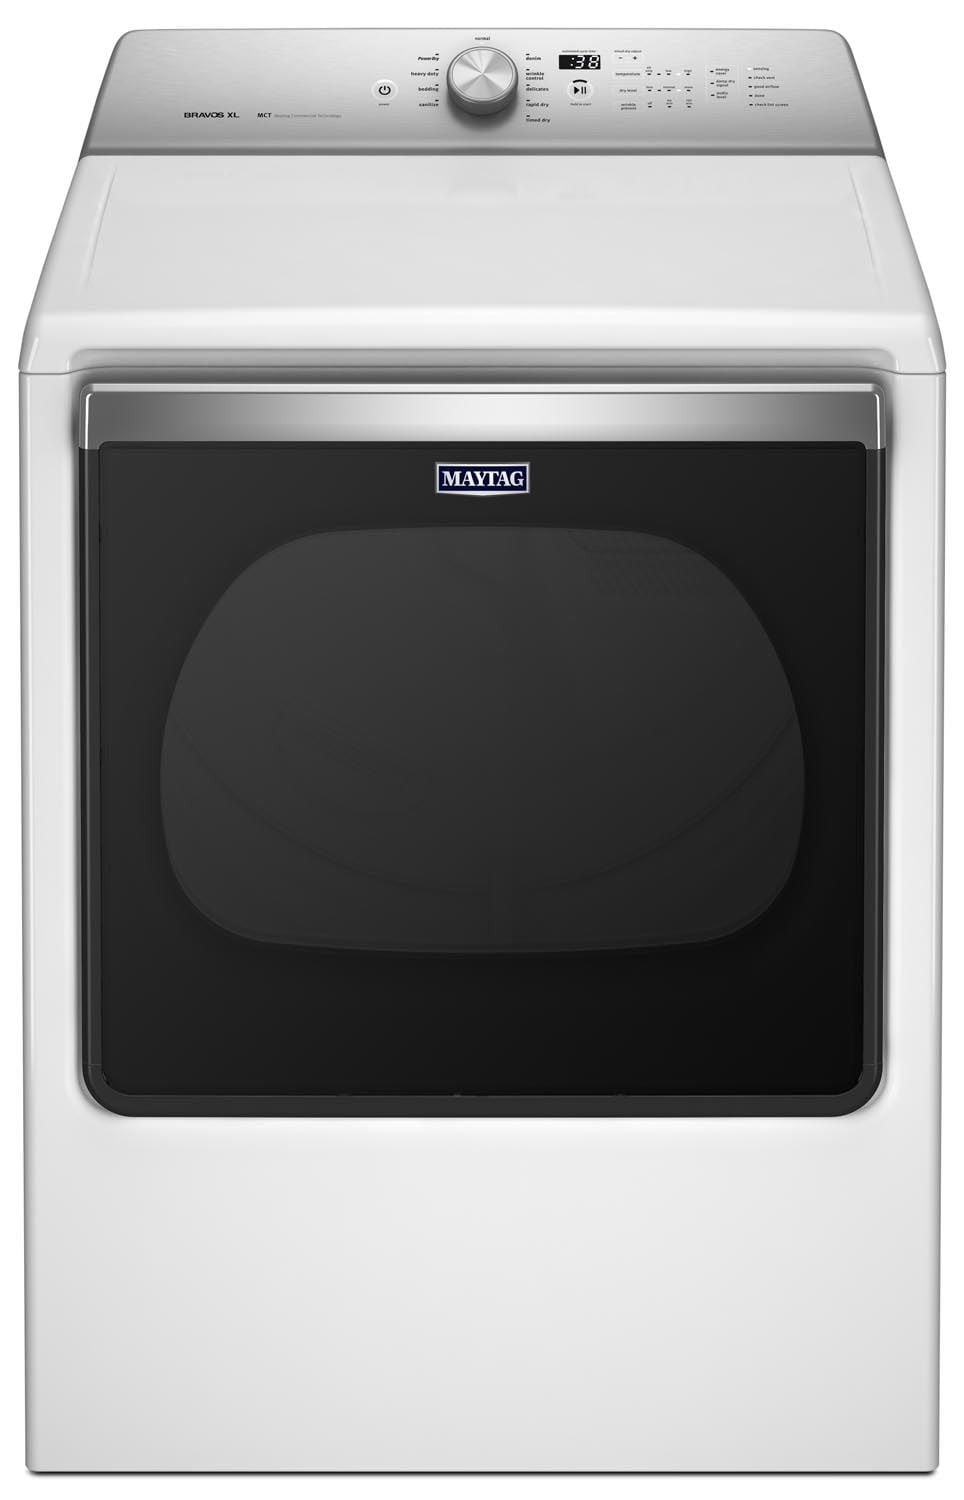 Maytag 8.8 Cu. Ft. Electric Dryer – YMEDB835DW